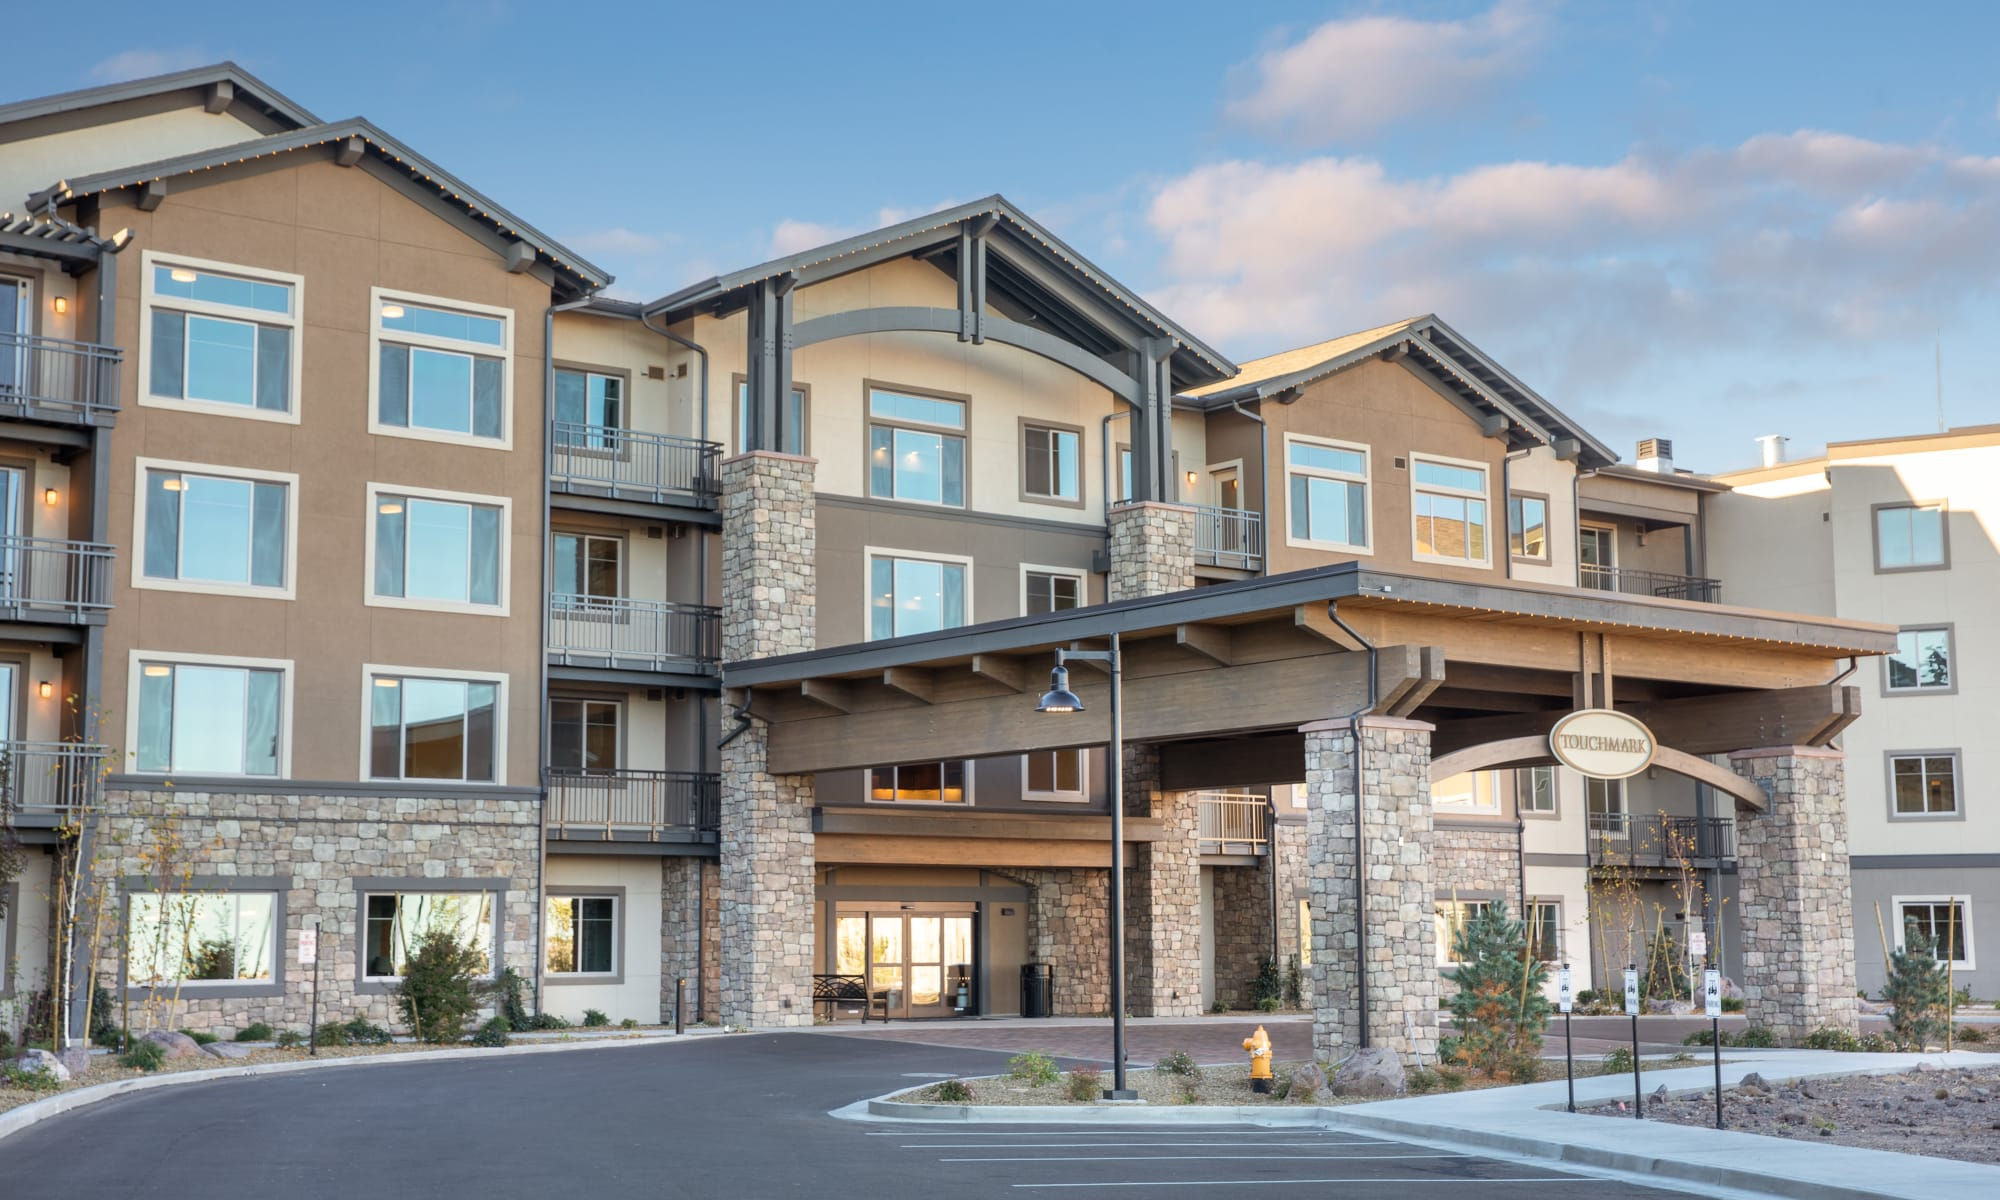 The building exterior and main entrance at Touchmark at The Ranch in Prescott, Arizona